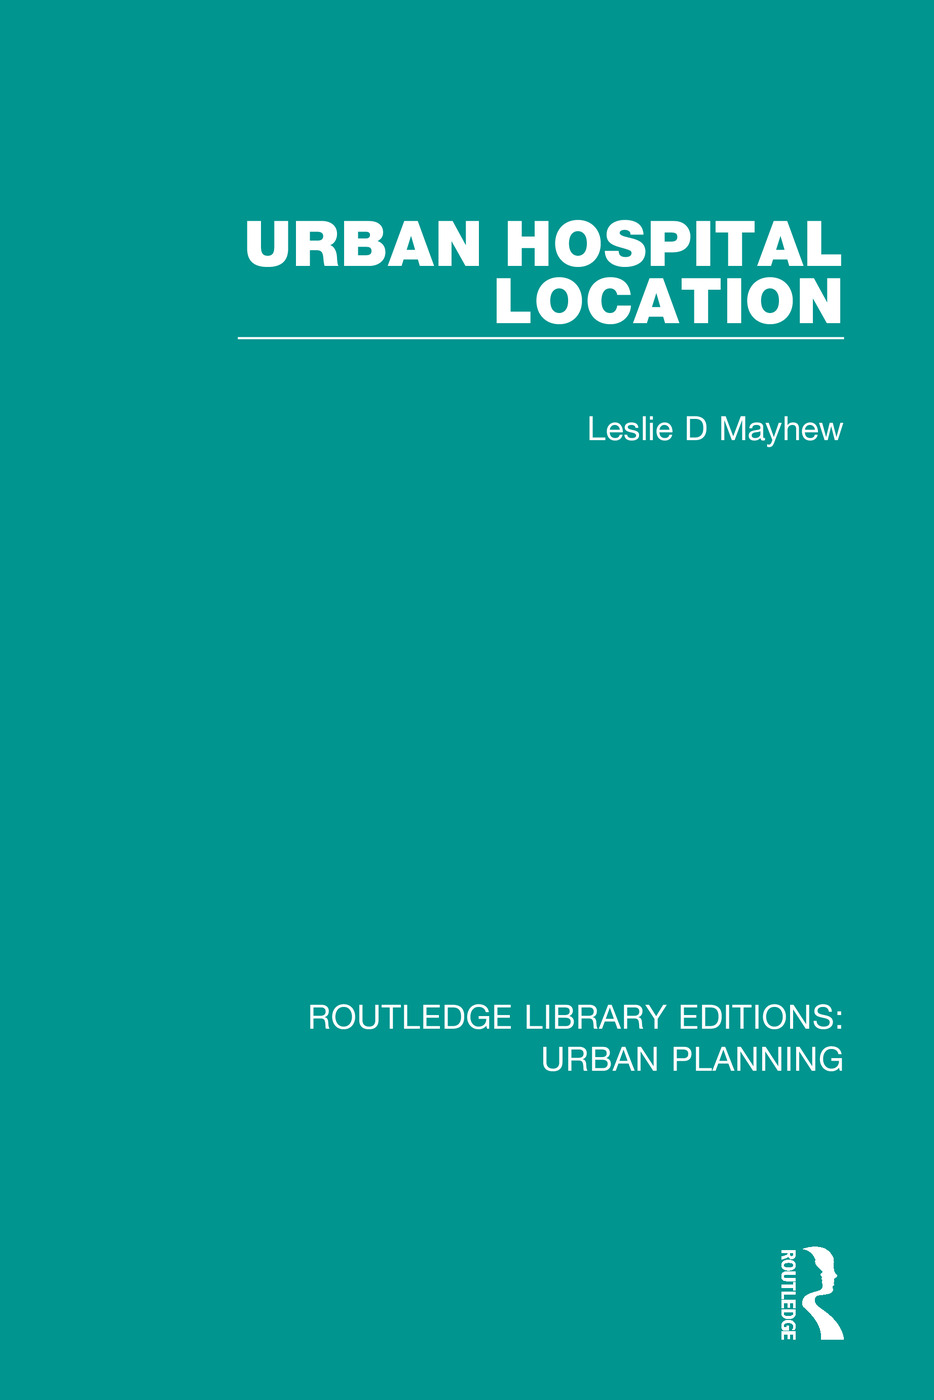 Urban Hospital Location book cover